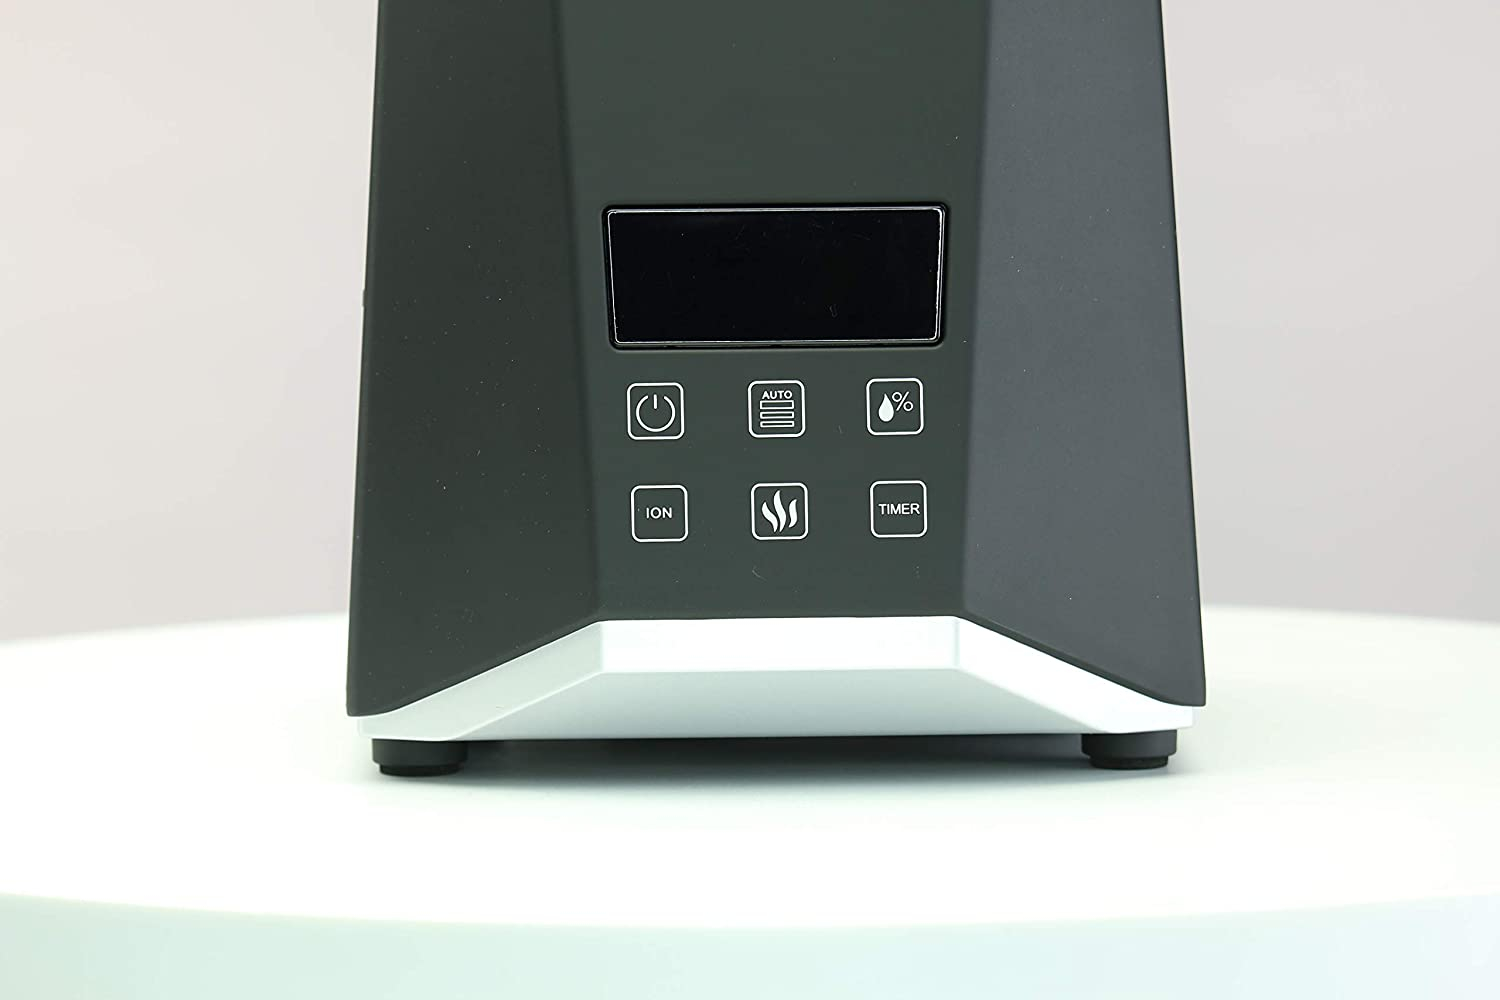 PowerPure 5000 Warm & Cool Mist Ultrasonic Humidifier - Permanent Filter - LCD Display - Remote Control Included - Black